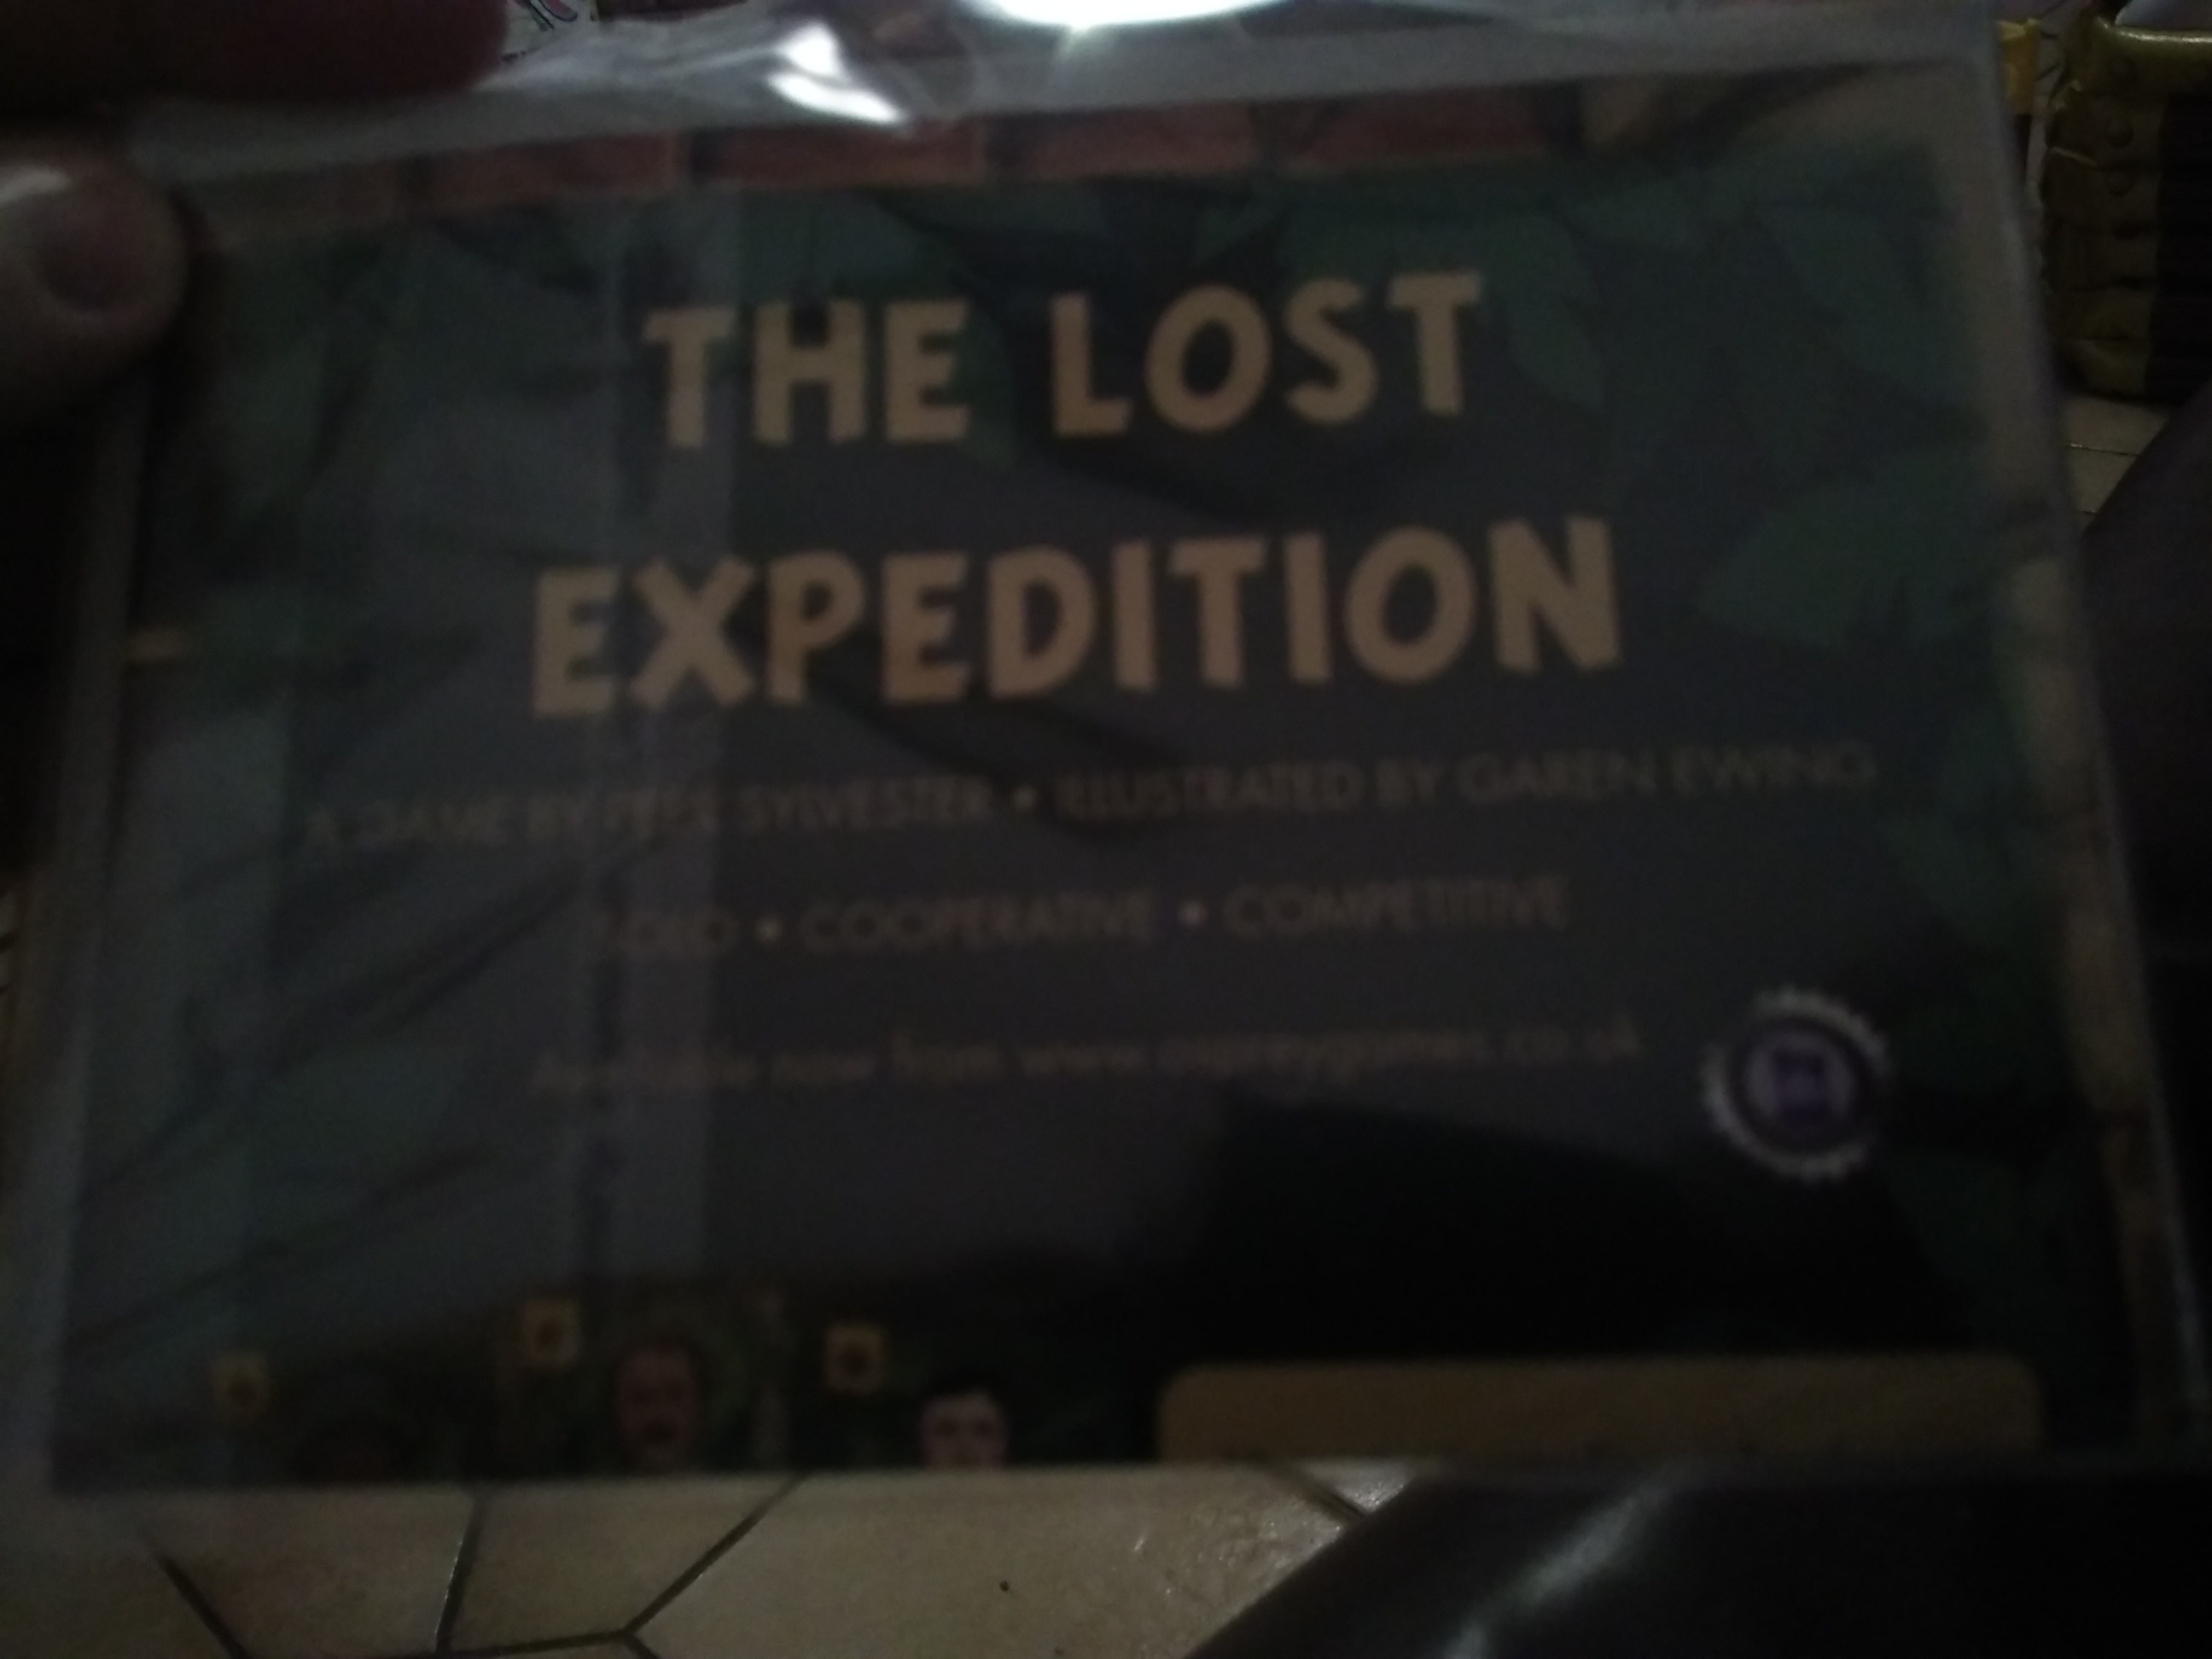 The Lost Expedition - Goodie 2017